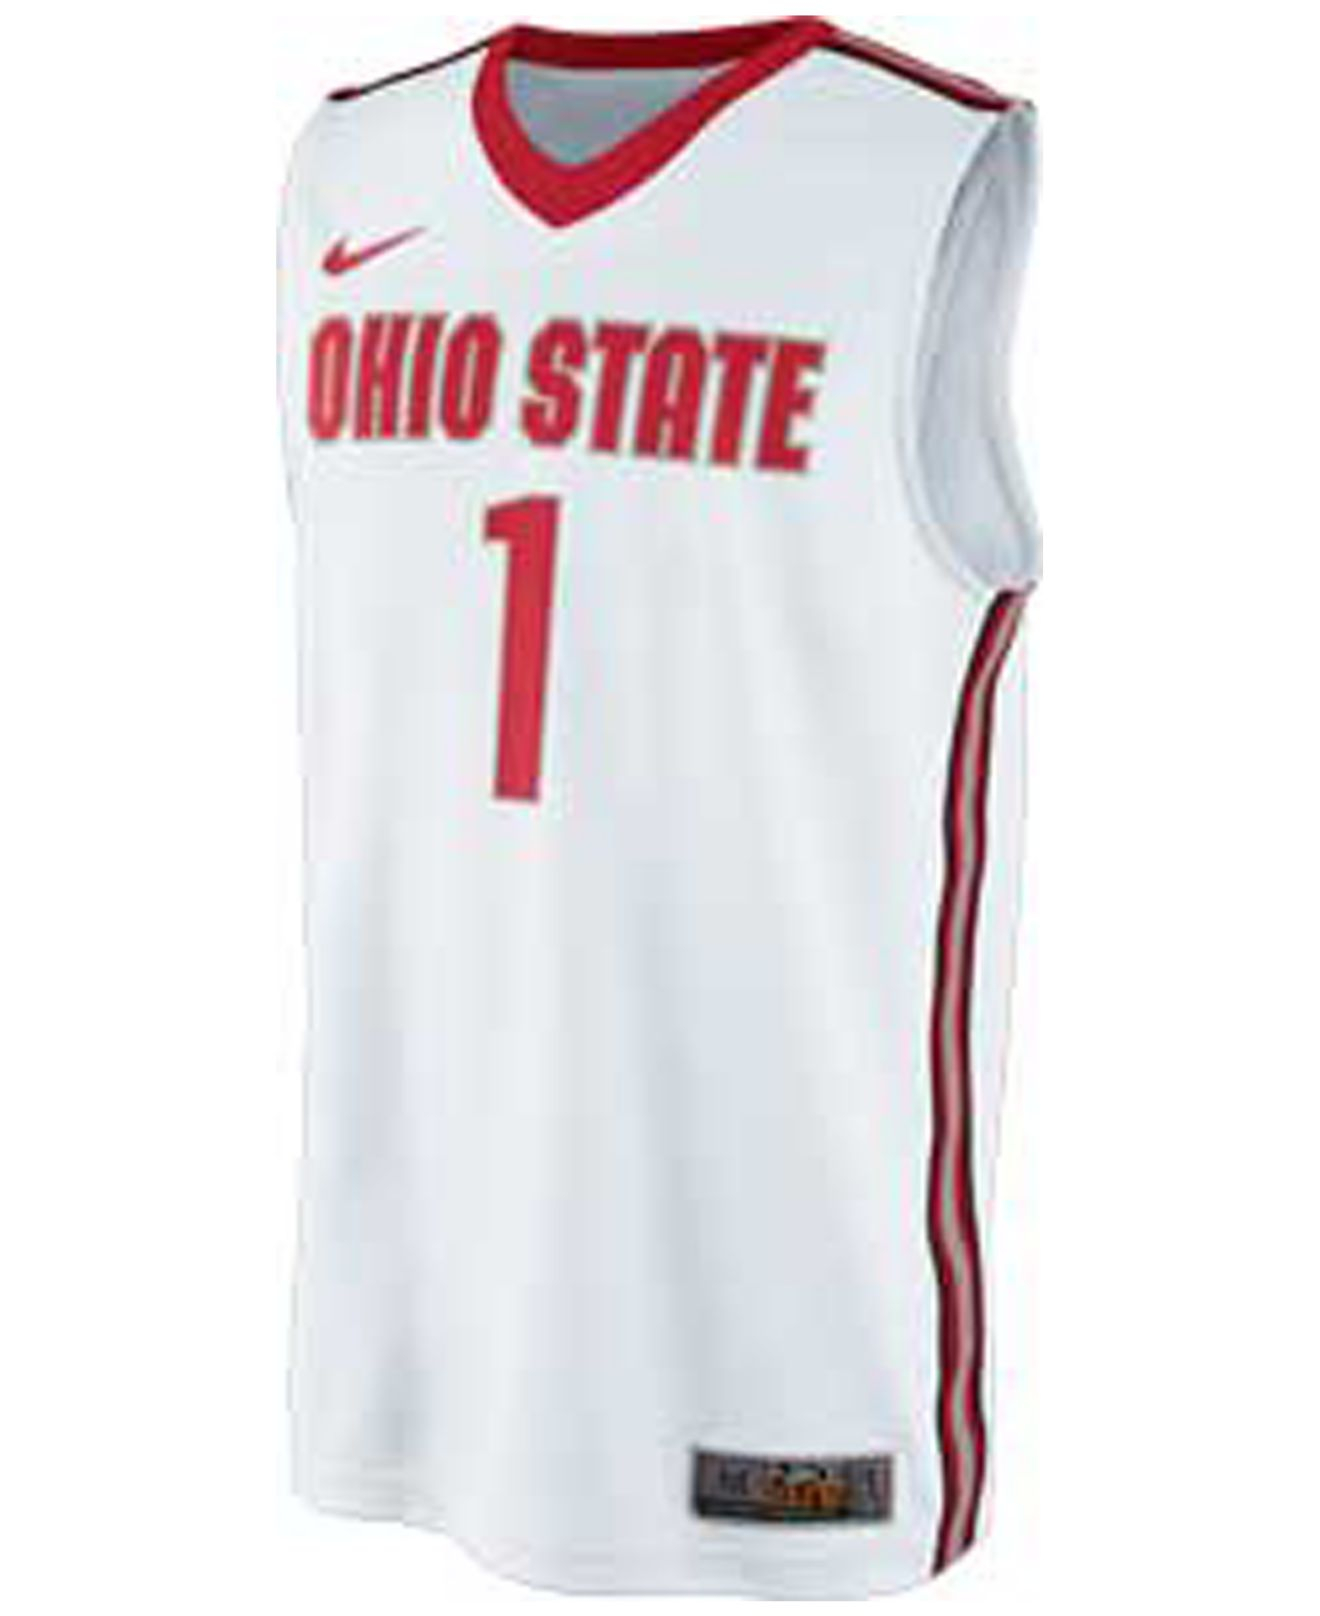 Nike men 39 s ohio state buckeyes basketball jersey in white for Ohio state shirts mens